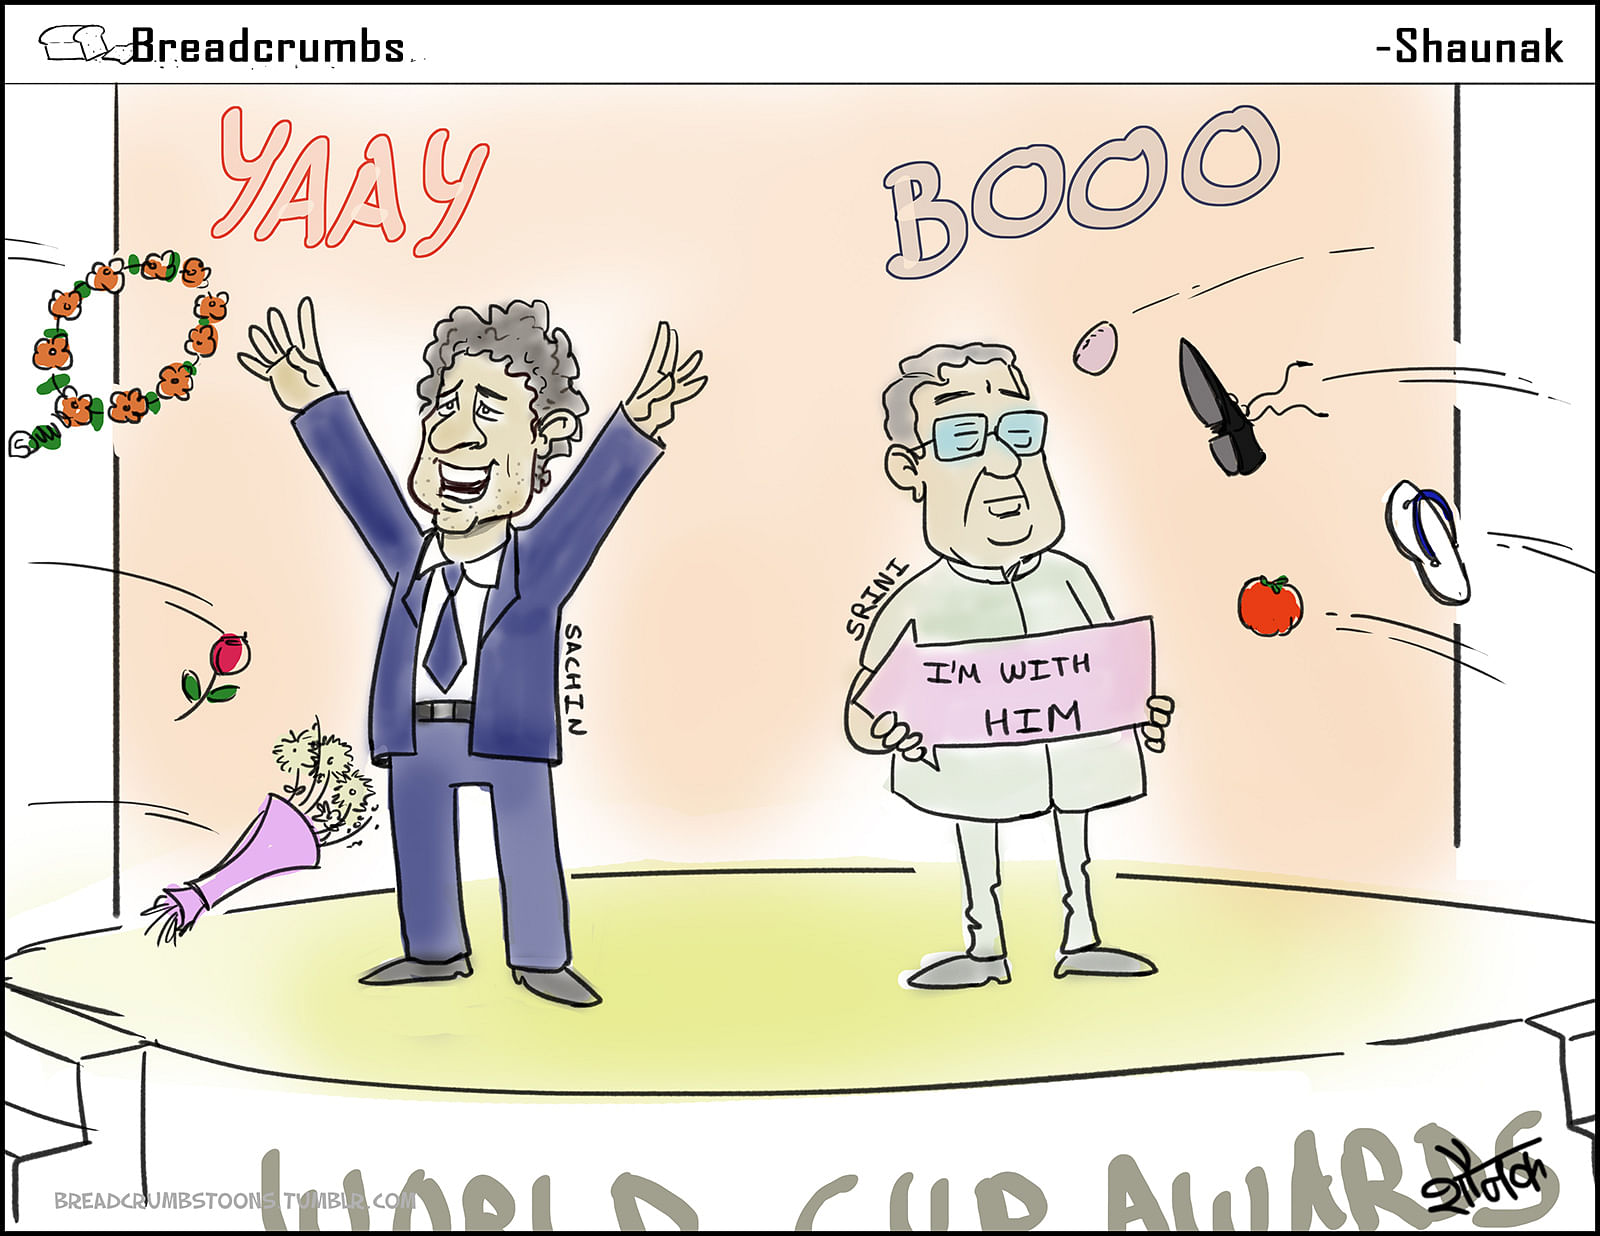 Comic: India's cricket representatives - The best and the worst